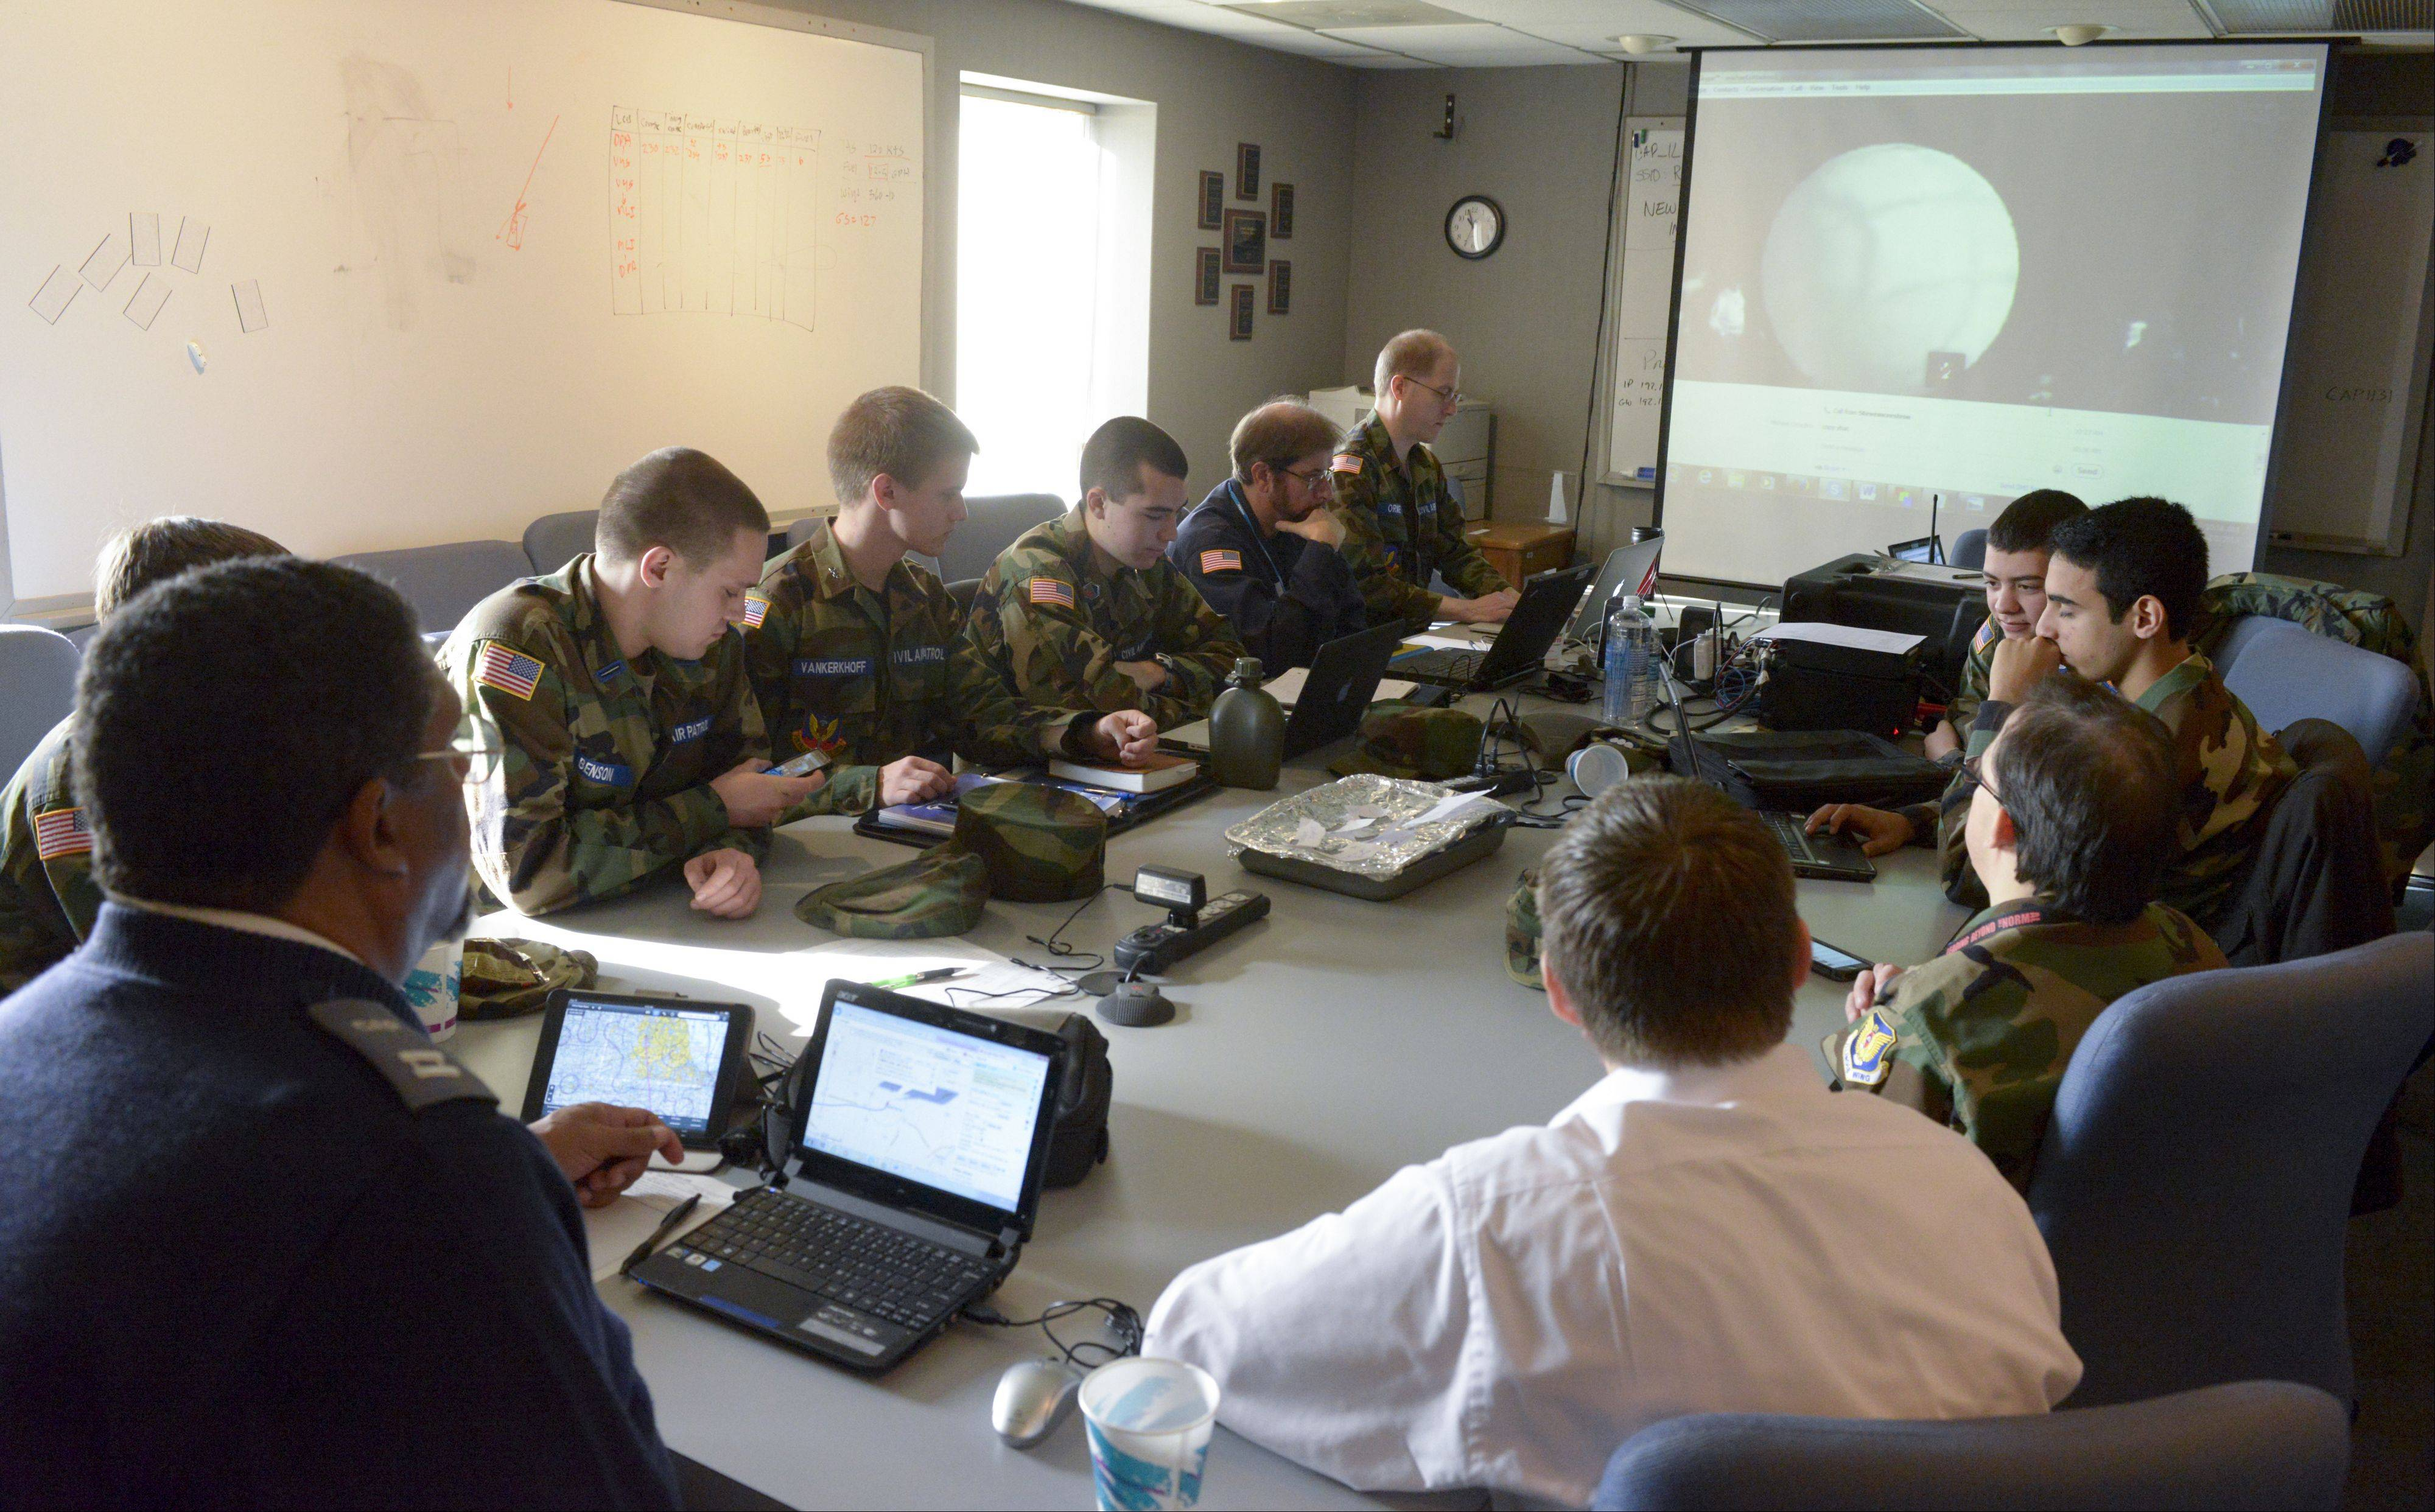 Members of the Fox Valley Composite Squadron of the Civil Air Patrol prepare for an attempt at the world record for highest paper airplane flight at the DuPage Airport, which served as mission control.